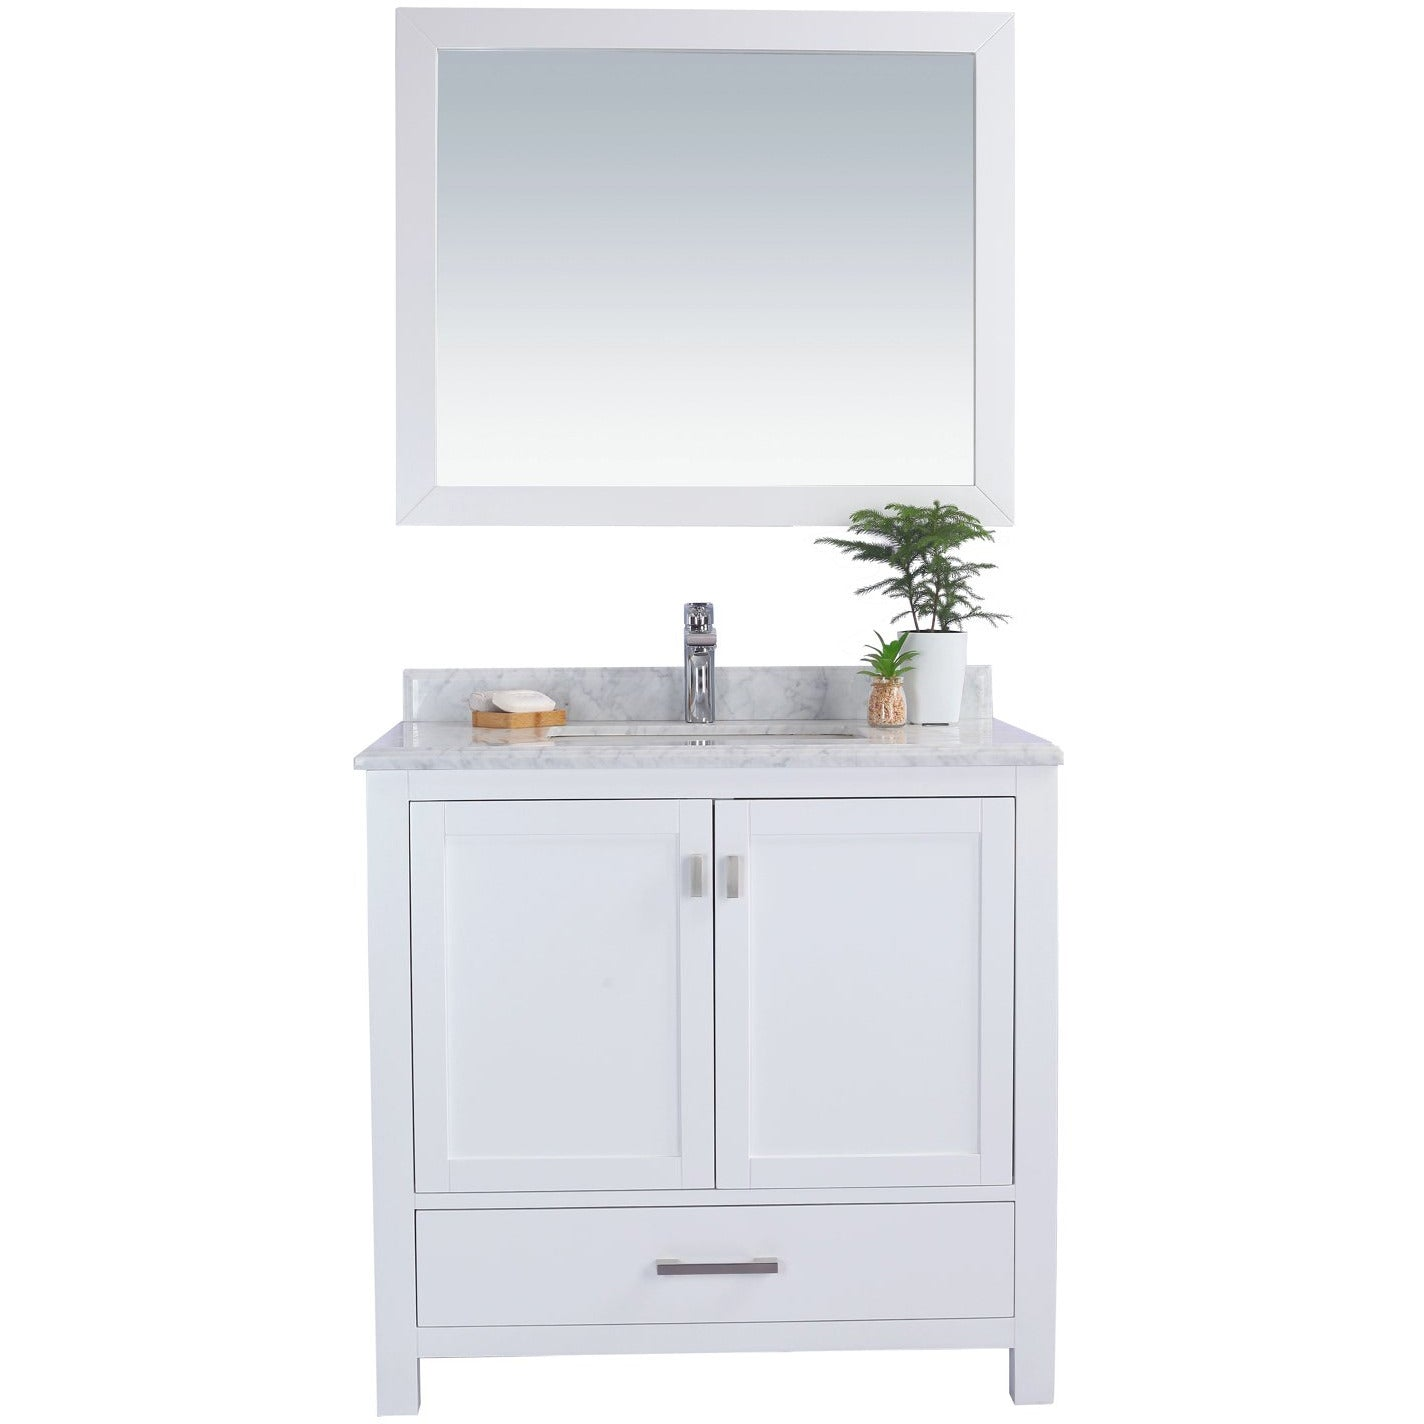 Wilson 36 - White Vanity and White Carrara Countertop by Laviva